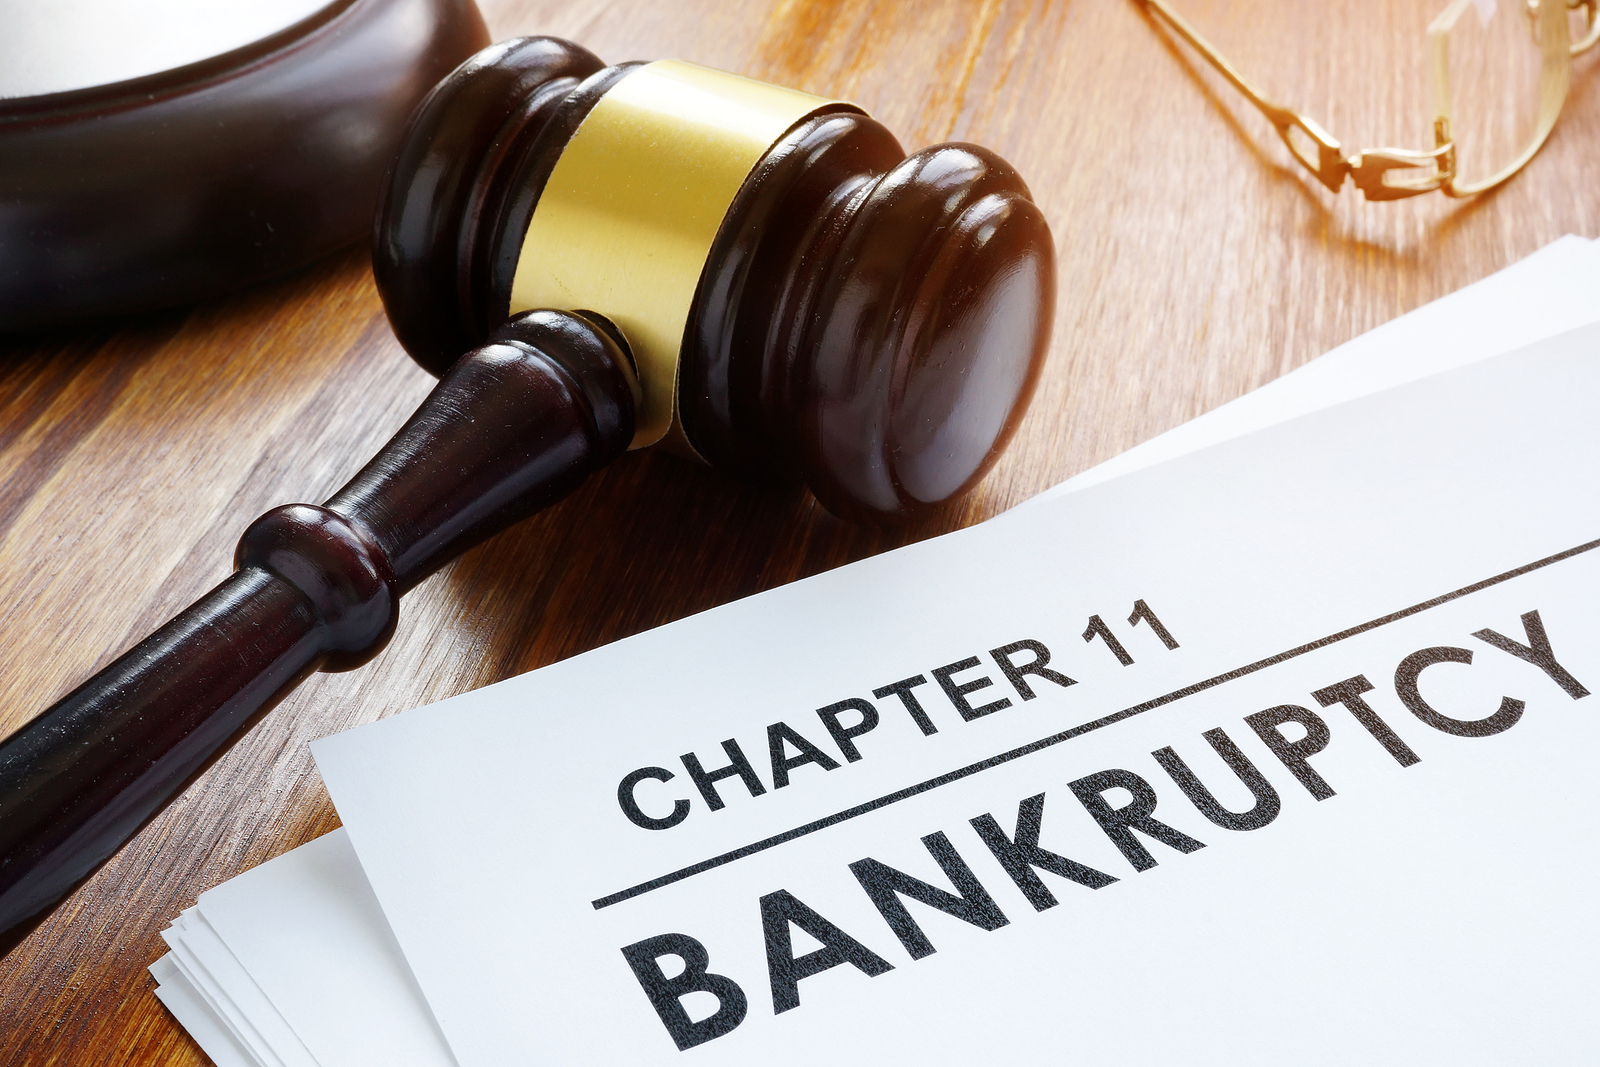 Construction Startup Katerra Files for Bankruptcy, How Are Creditors Protected?